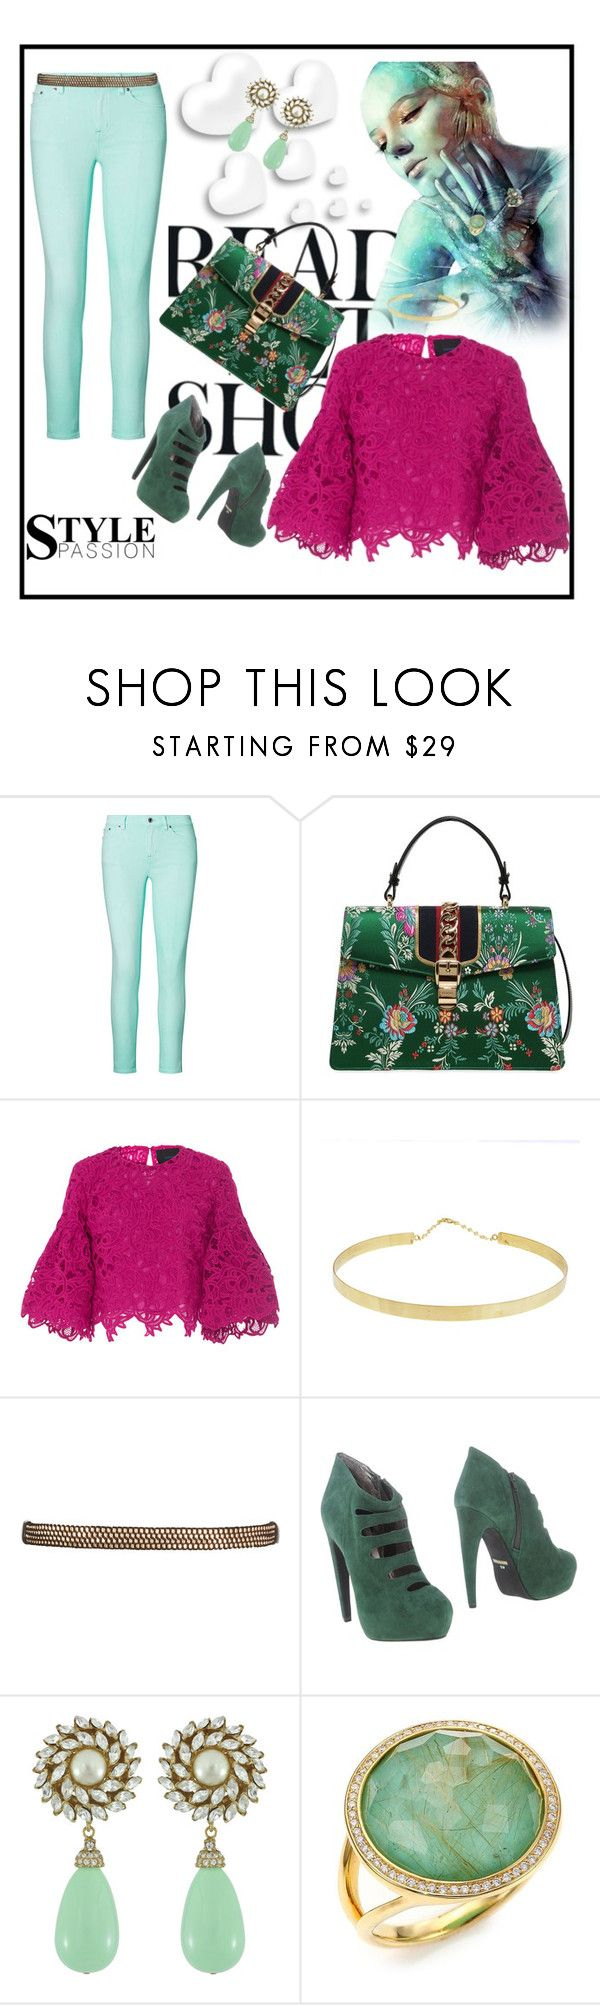 """Hot N Ready"" by gigi-sessions on Polyvore featuring Valentino, Ralph Lauren, Gucci, Costarellos, Lana, Jeffrey Campbell, Ciner, Ippolita and Sorrelli"